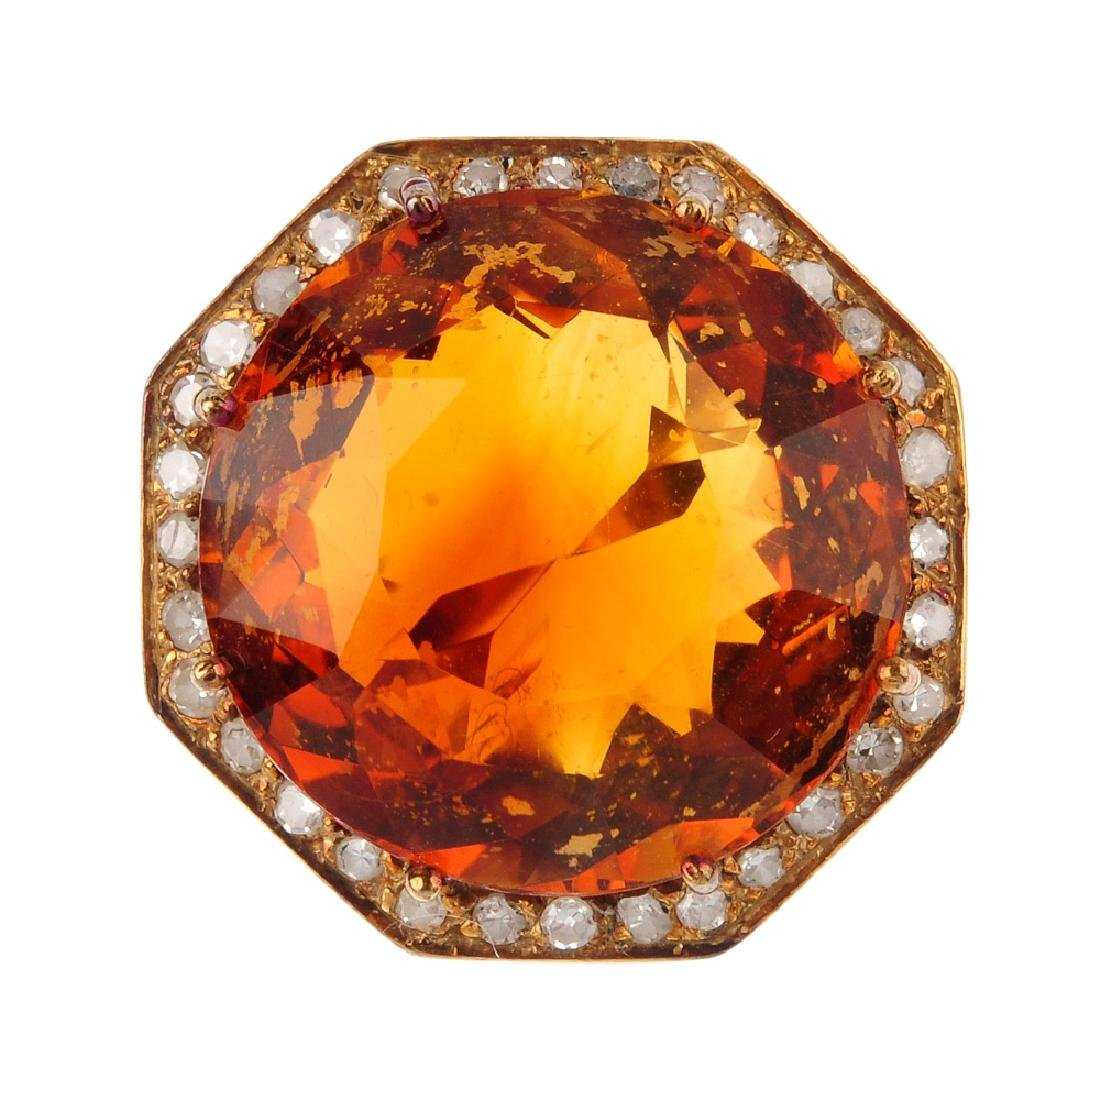 A diamond and citrine dress ring. The circular-shape